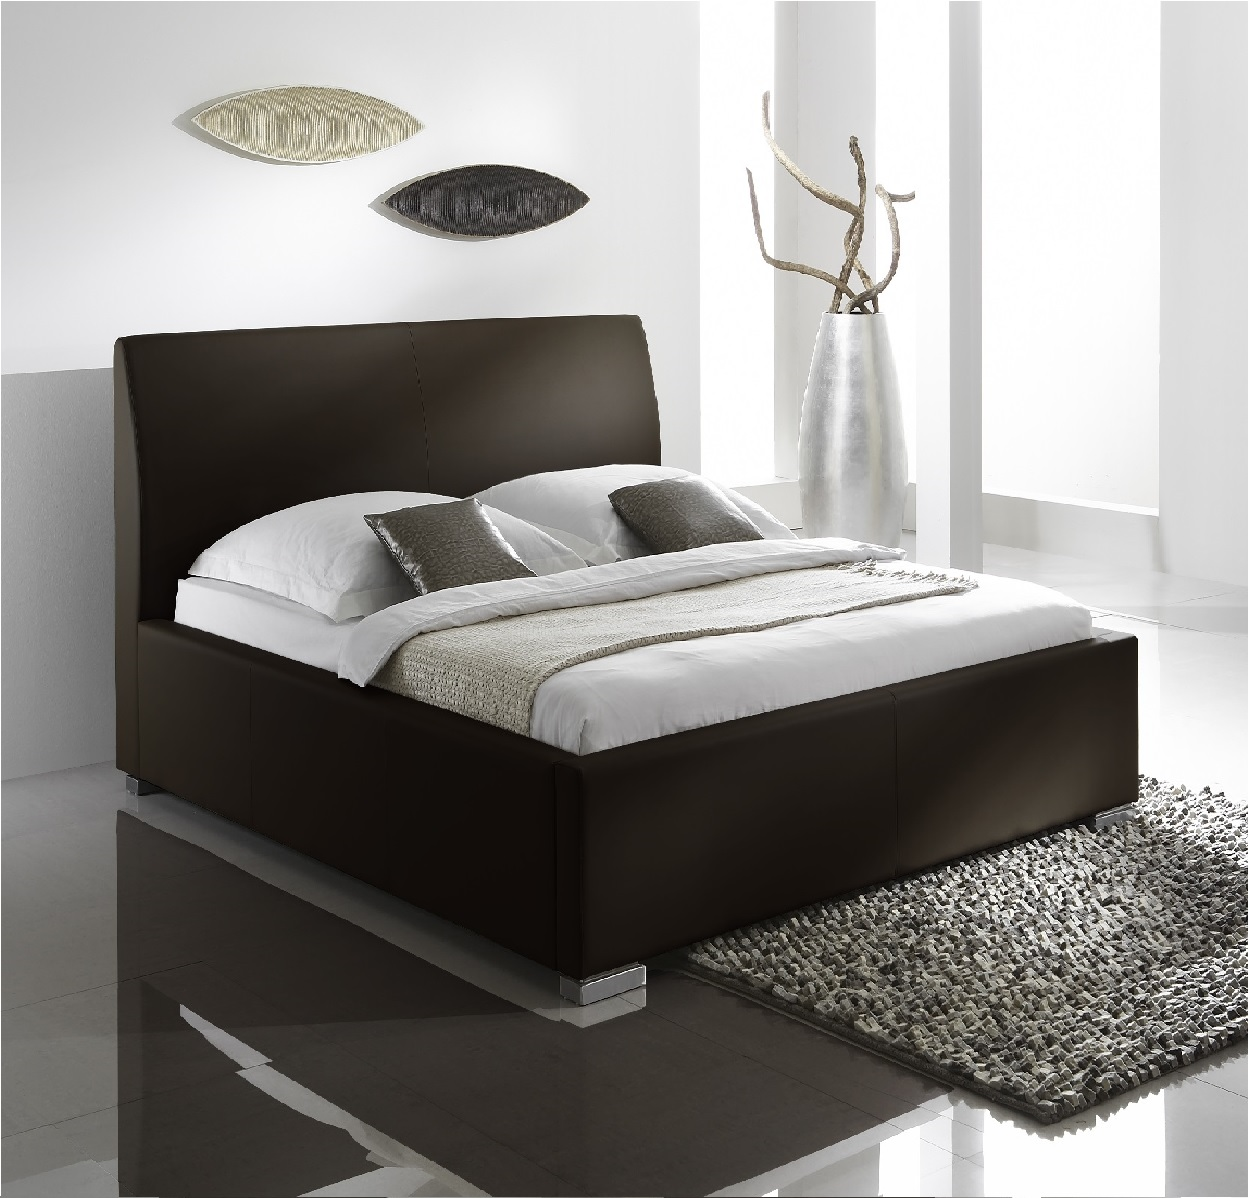 polsterbett altora braun polsterbetten betten. Black Bedroom Furniture Sets. Home Design Ideas